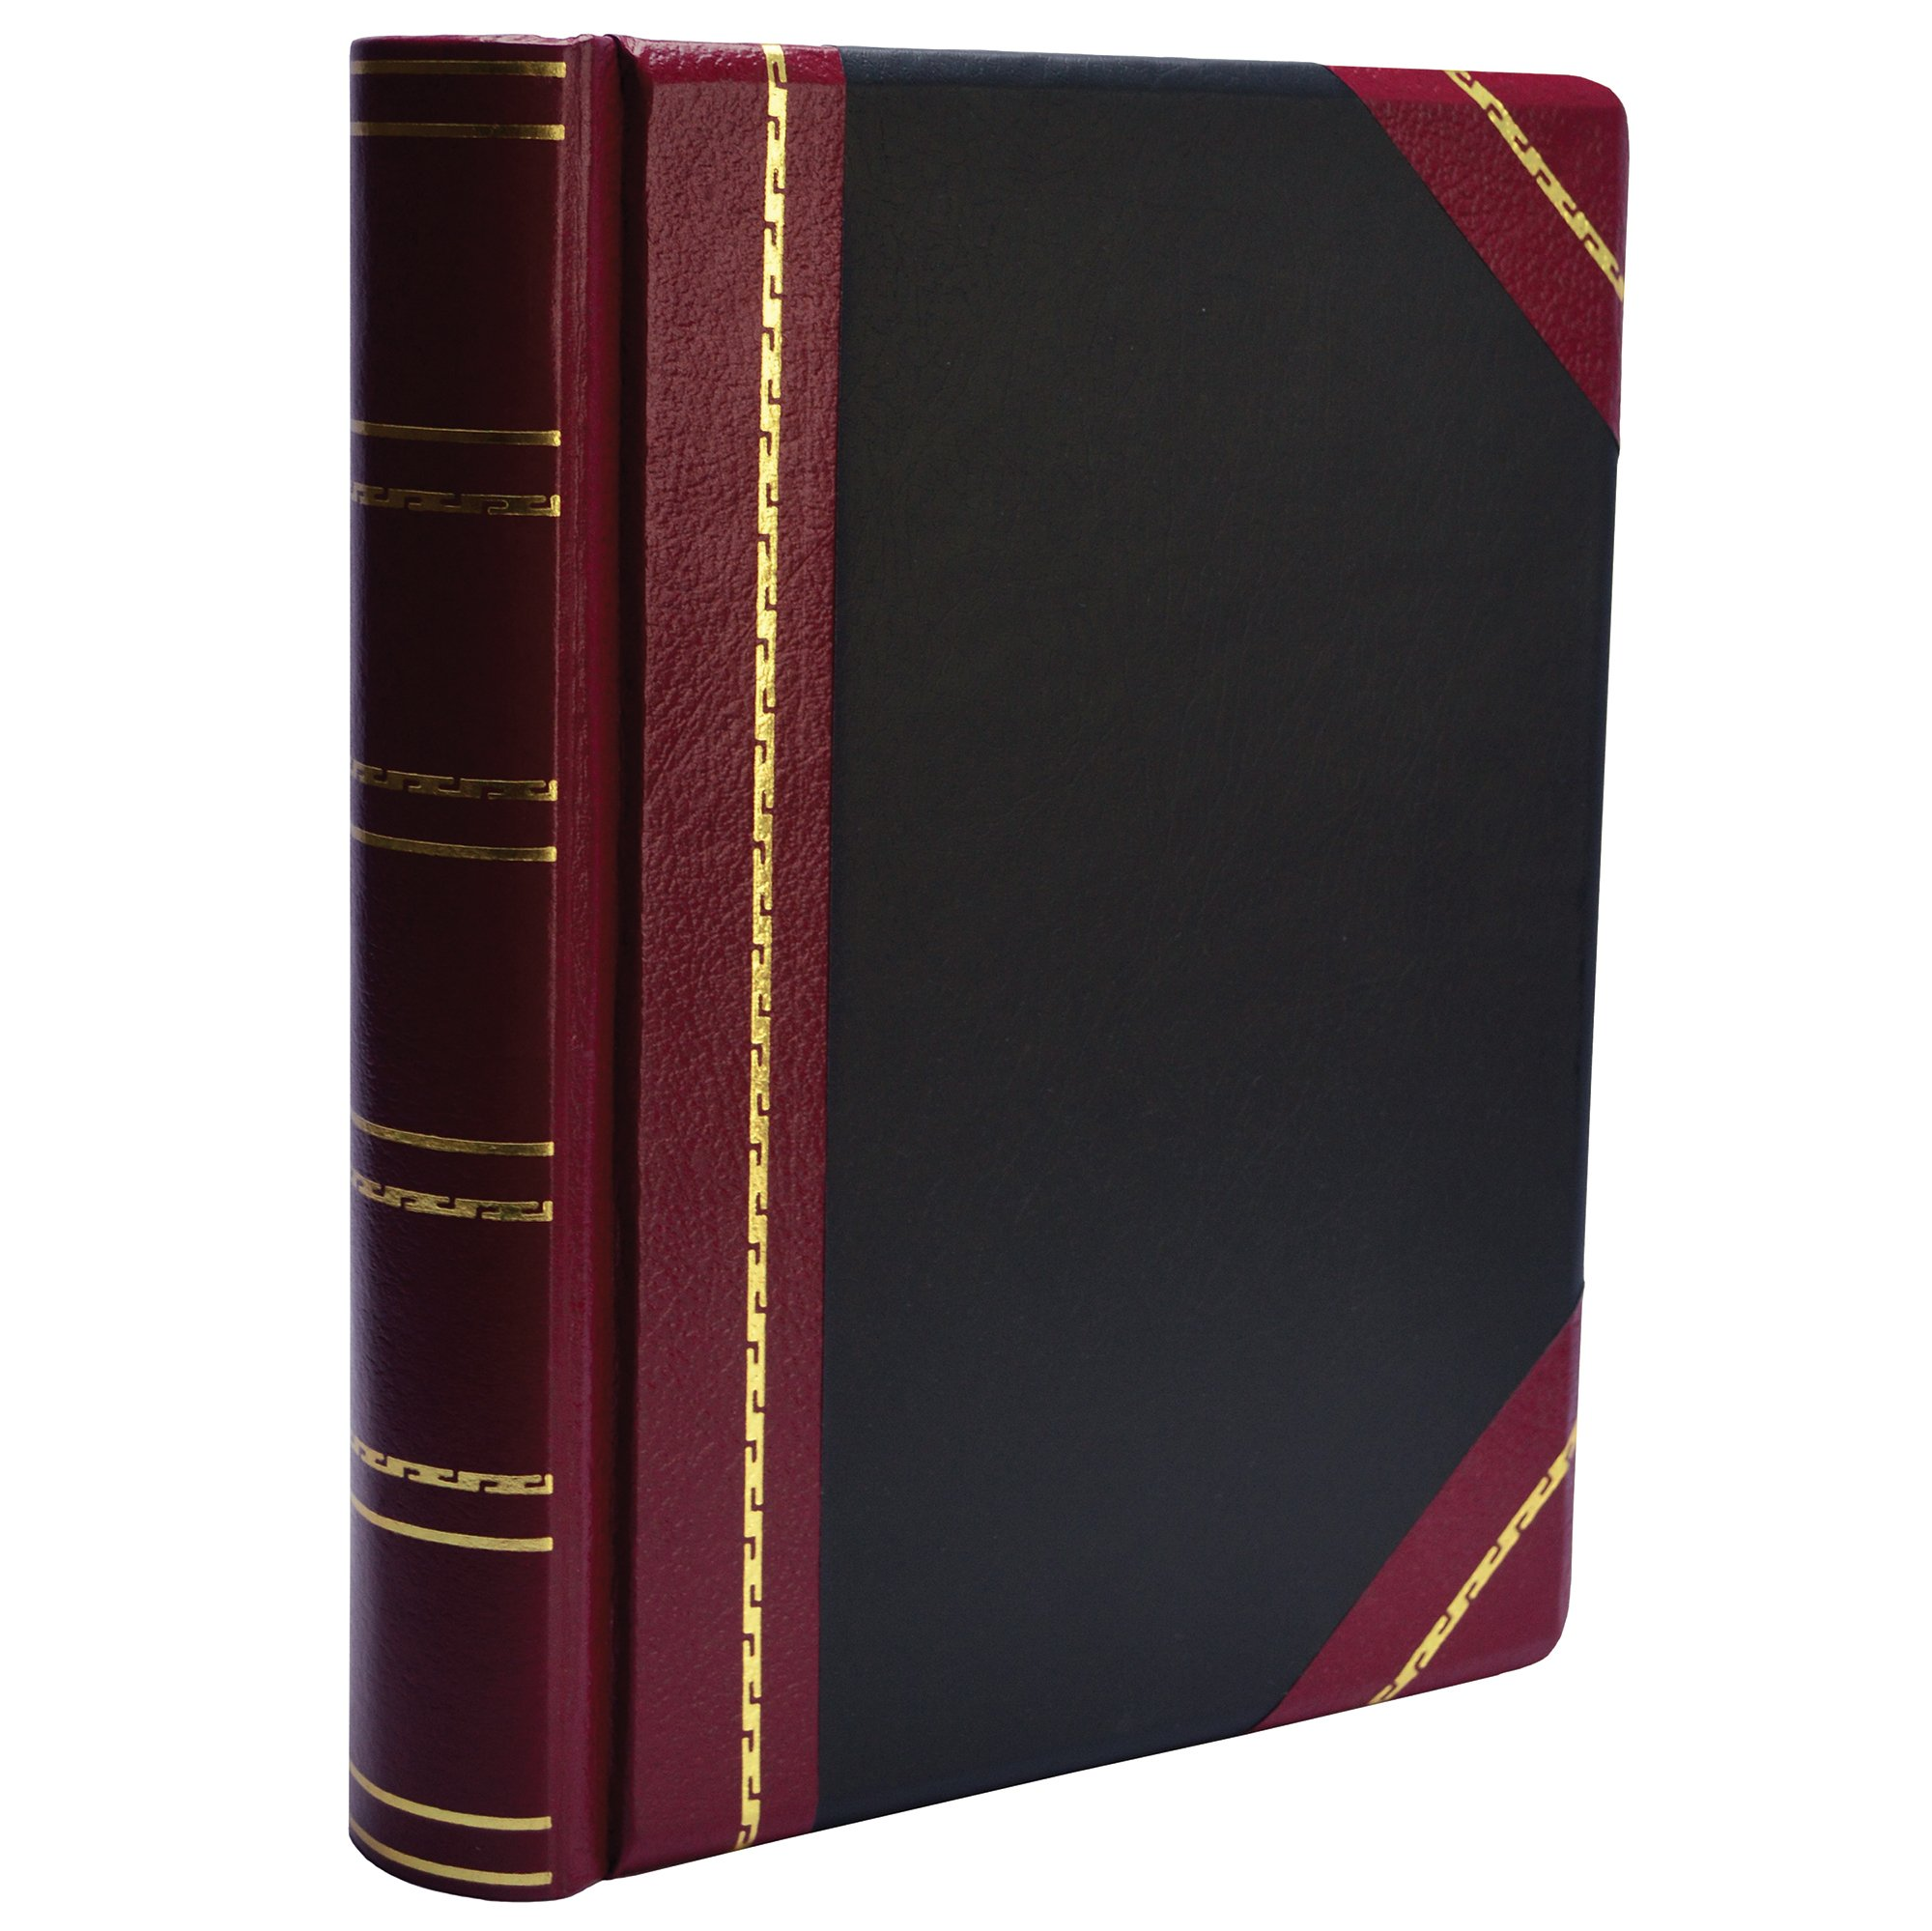 Wilson Jones Minute Book, Binder Only, Letter Size, 500 Page Capacity, Imitation Leather, Red and Black (W397-15)